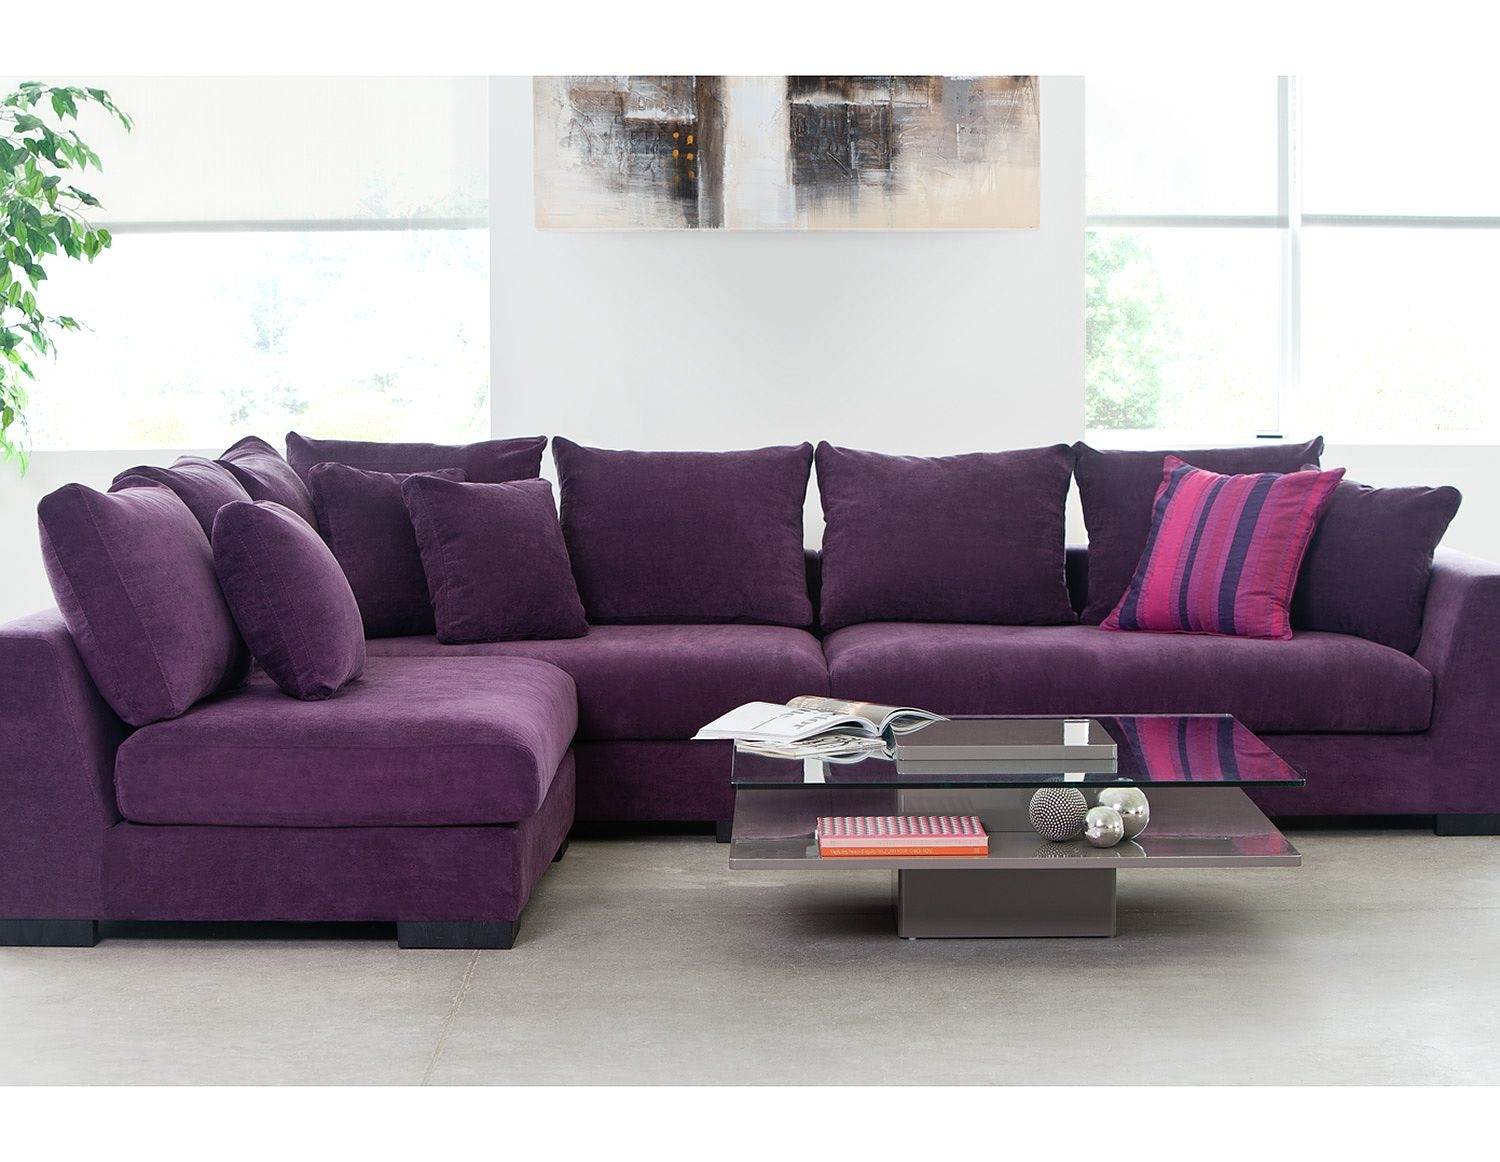 Colorful Sofas 12 Best Ideas Of Colorful Sectional Sofas